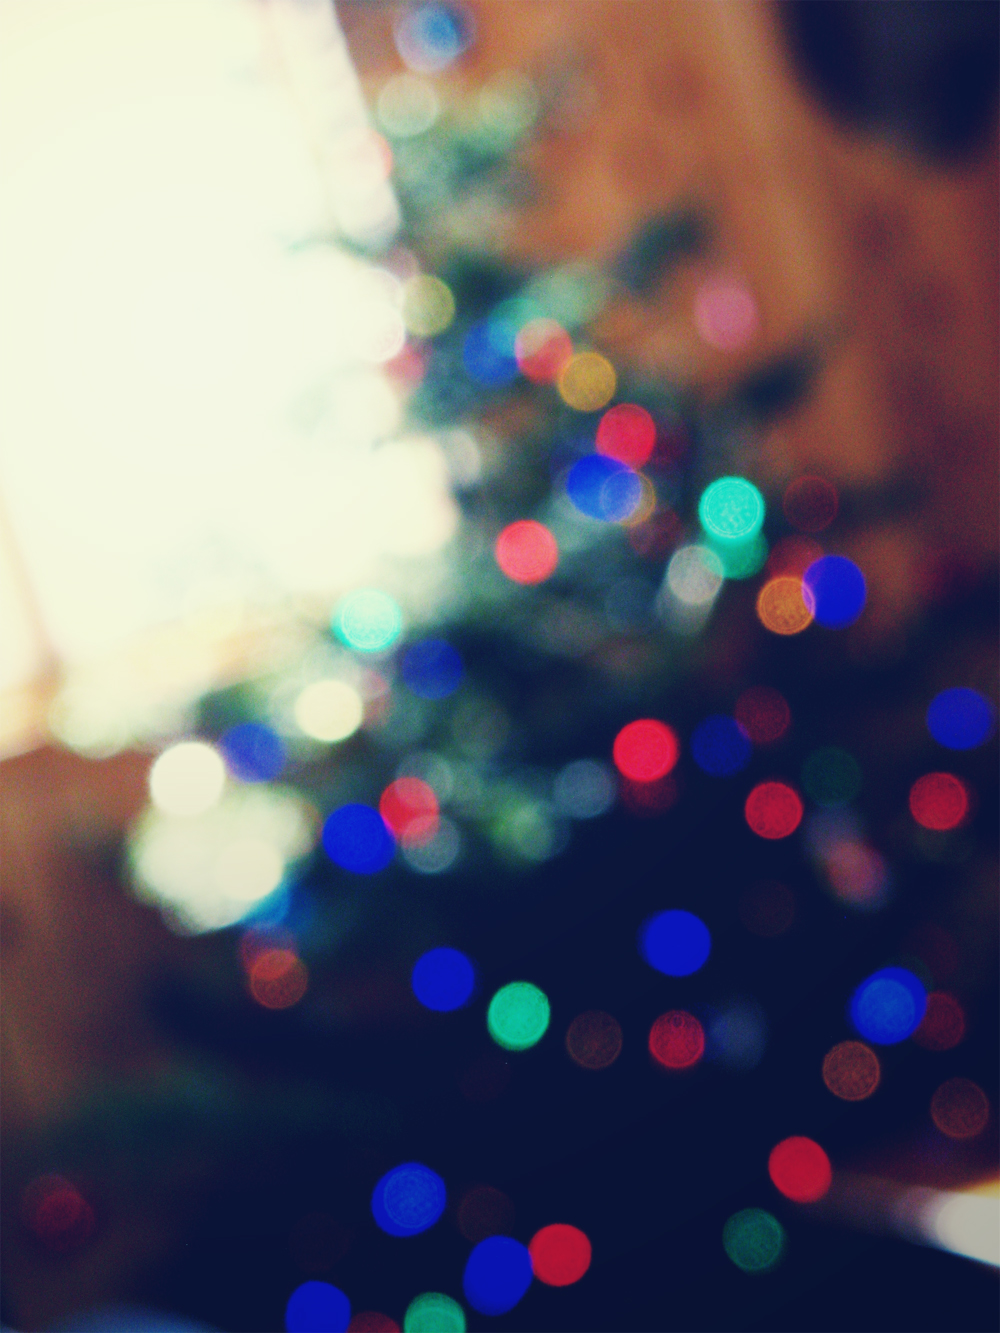 Bokeh Christmas tree near window